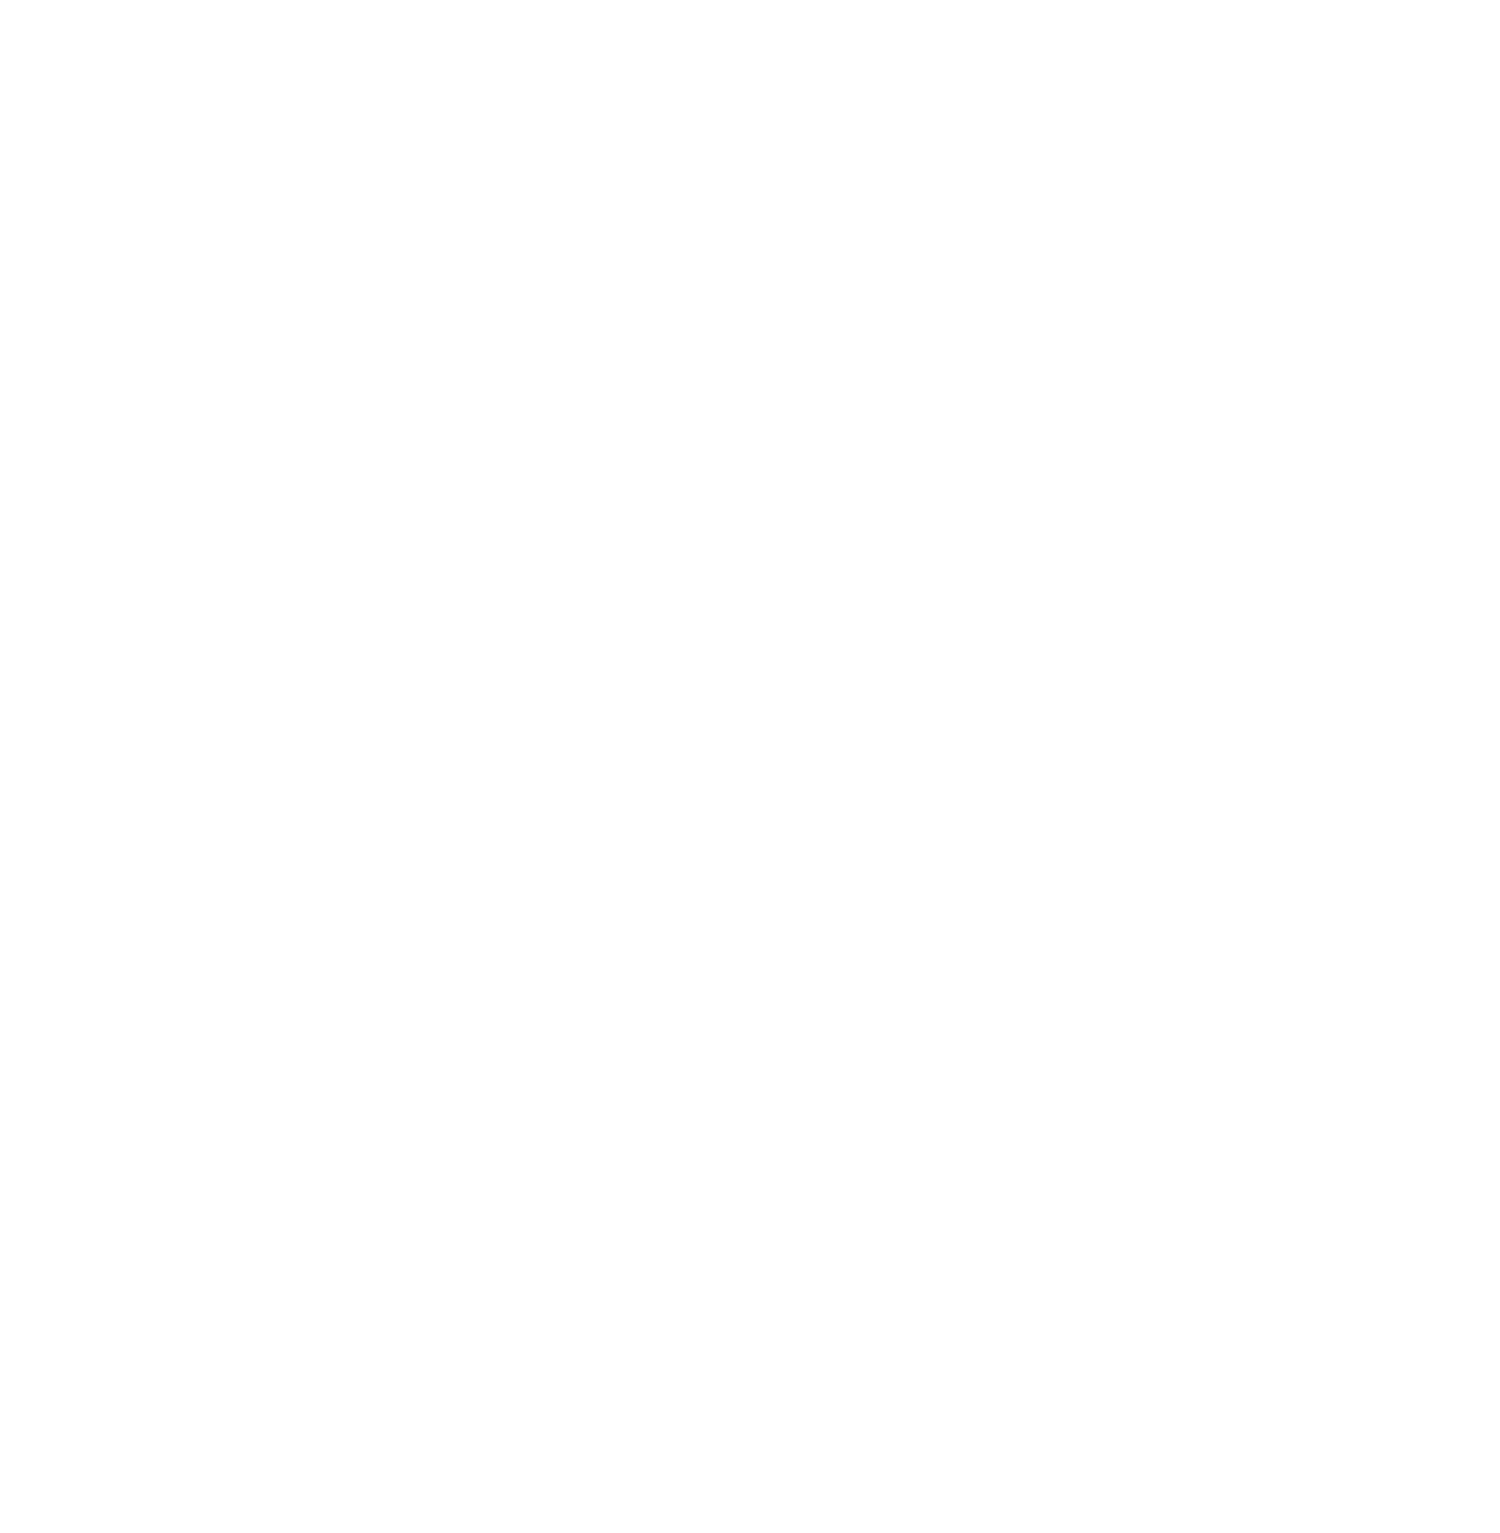 Lucas Heck Photography